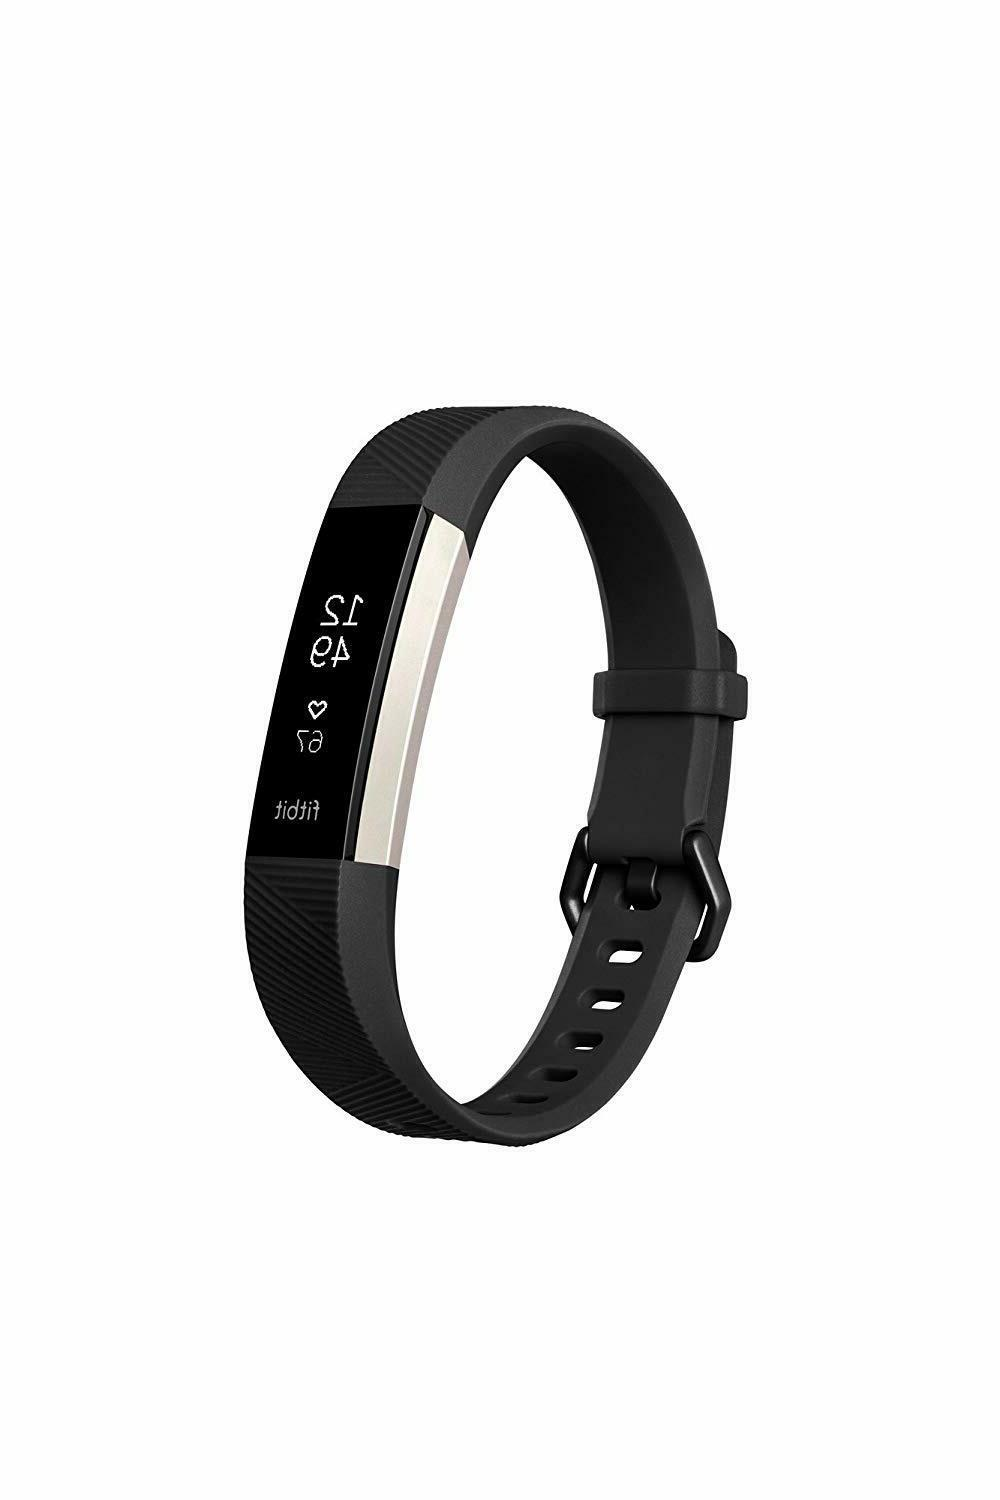 Fitbit Alta HR, Gunmetal, Special Edition Black Large Best for